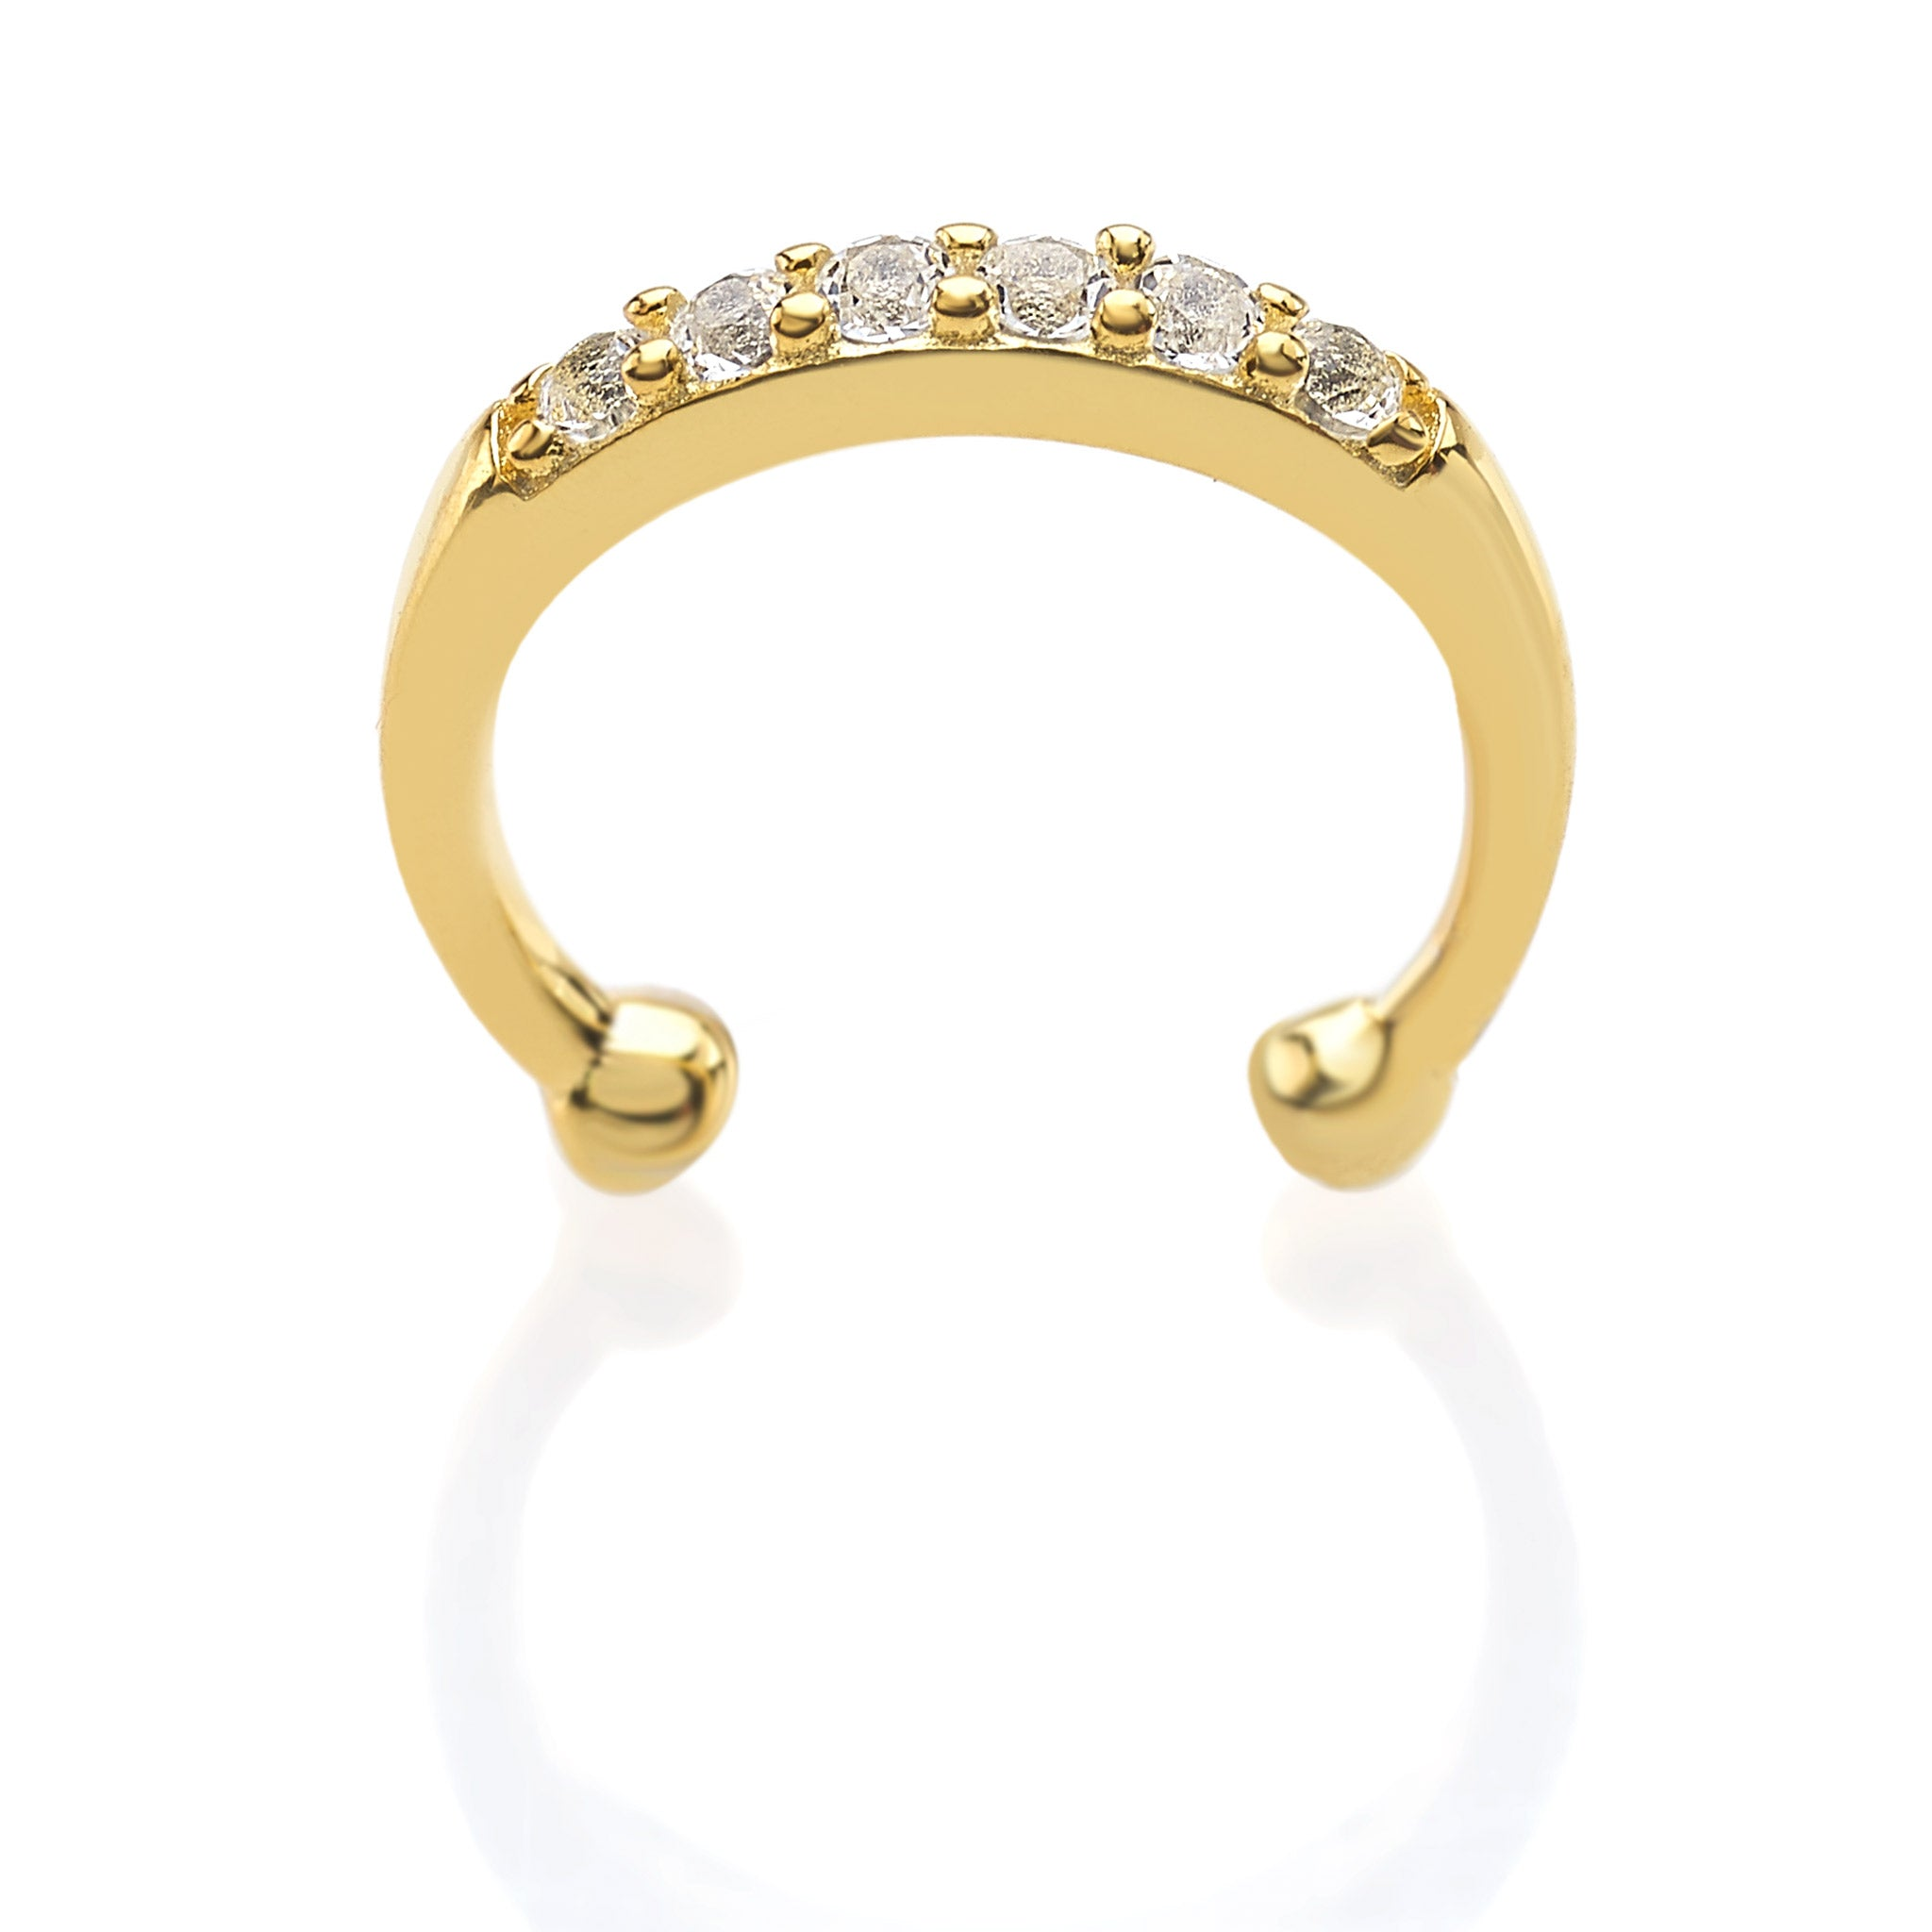 18 Karat Gold Plated Lip Ring in 925 Sterling Silver with White Topaz Gemstones